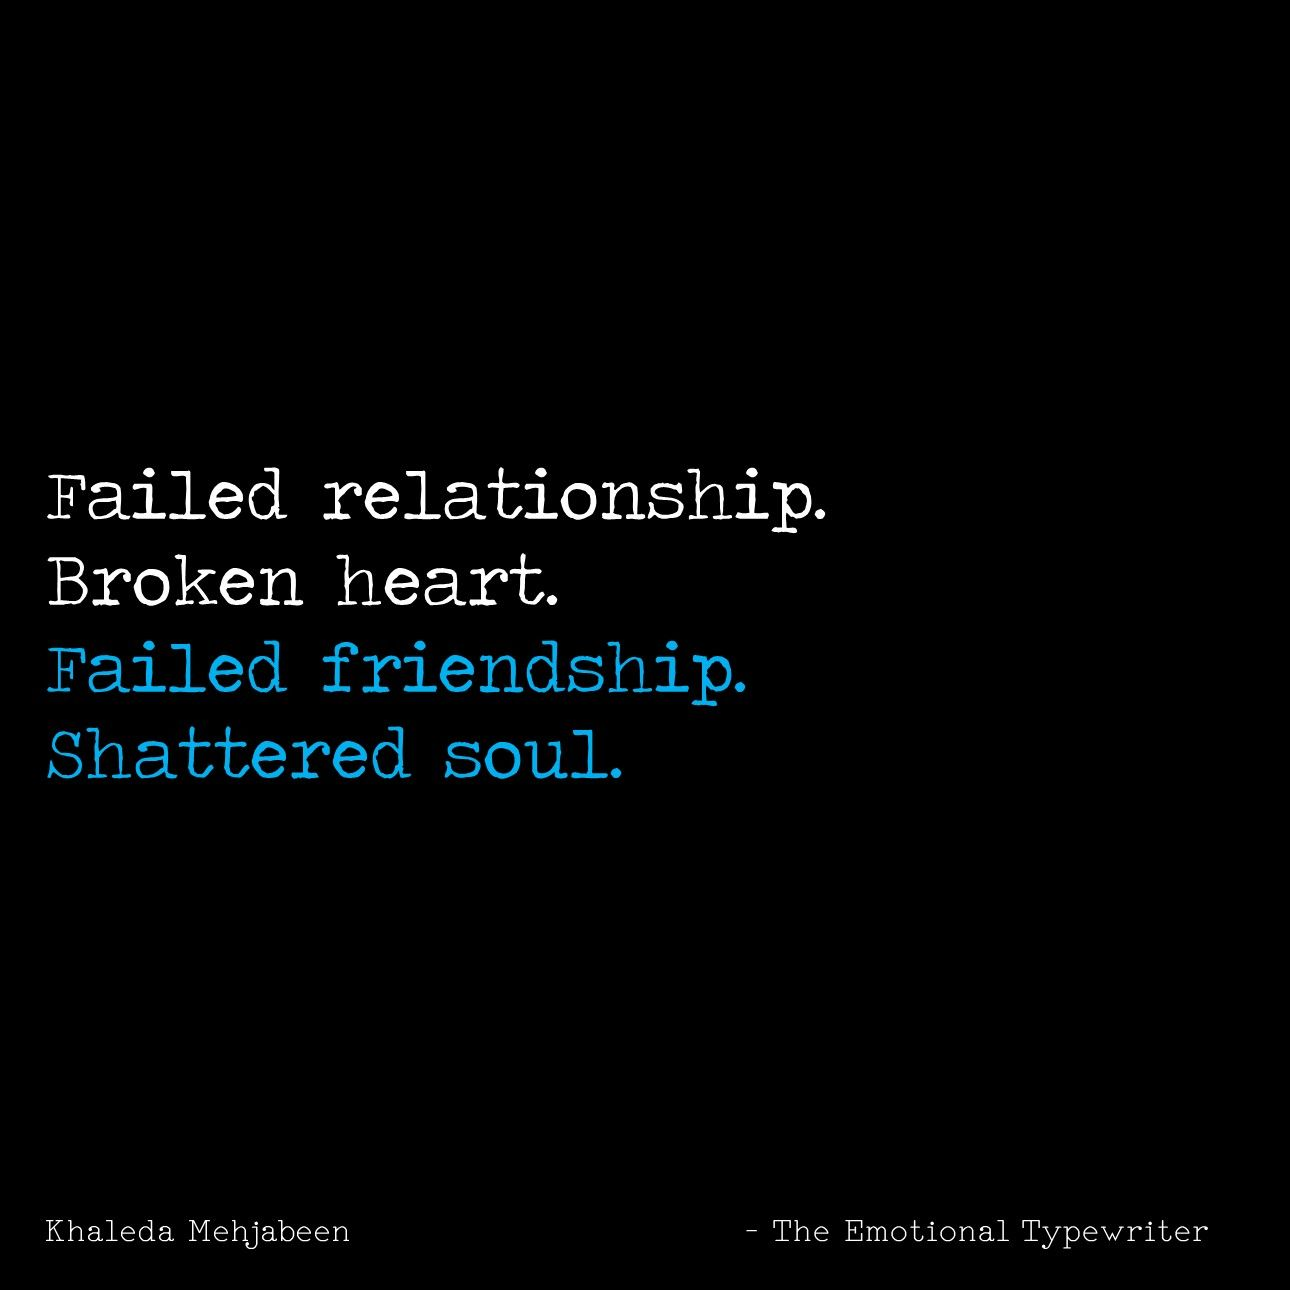 Quotes For A Broken Heart Broken Heart Or Shattered Soul Quotes Tet